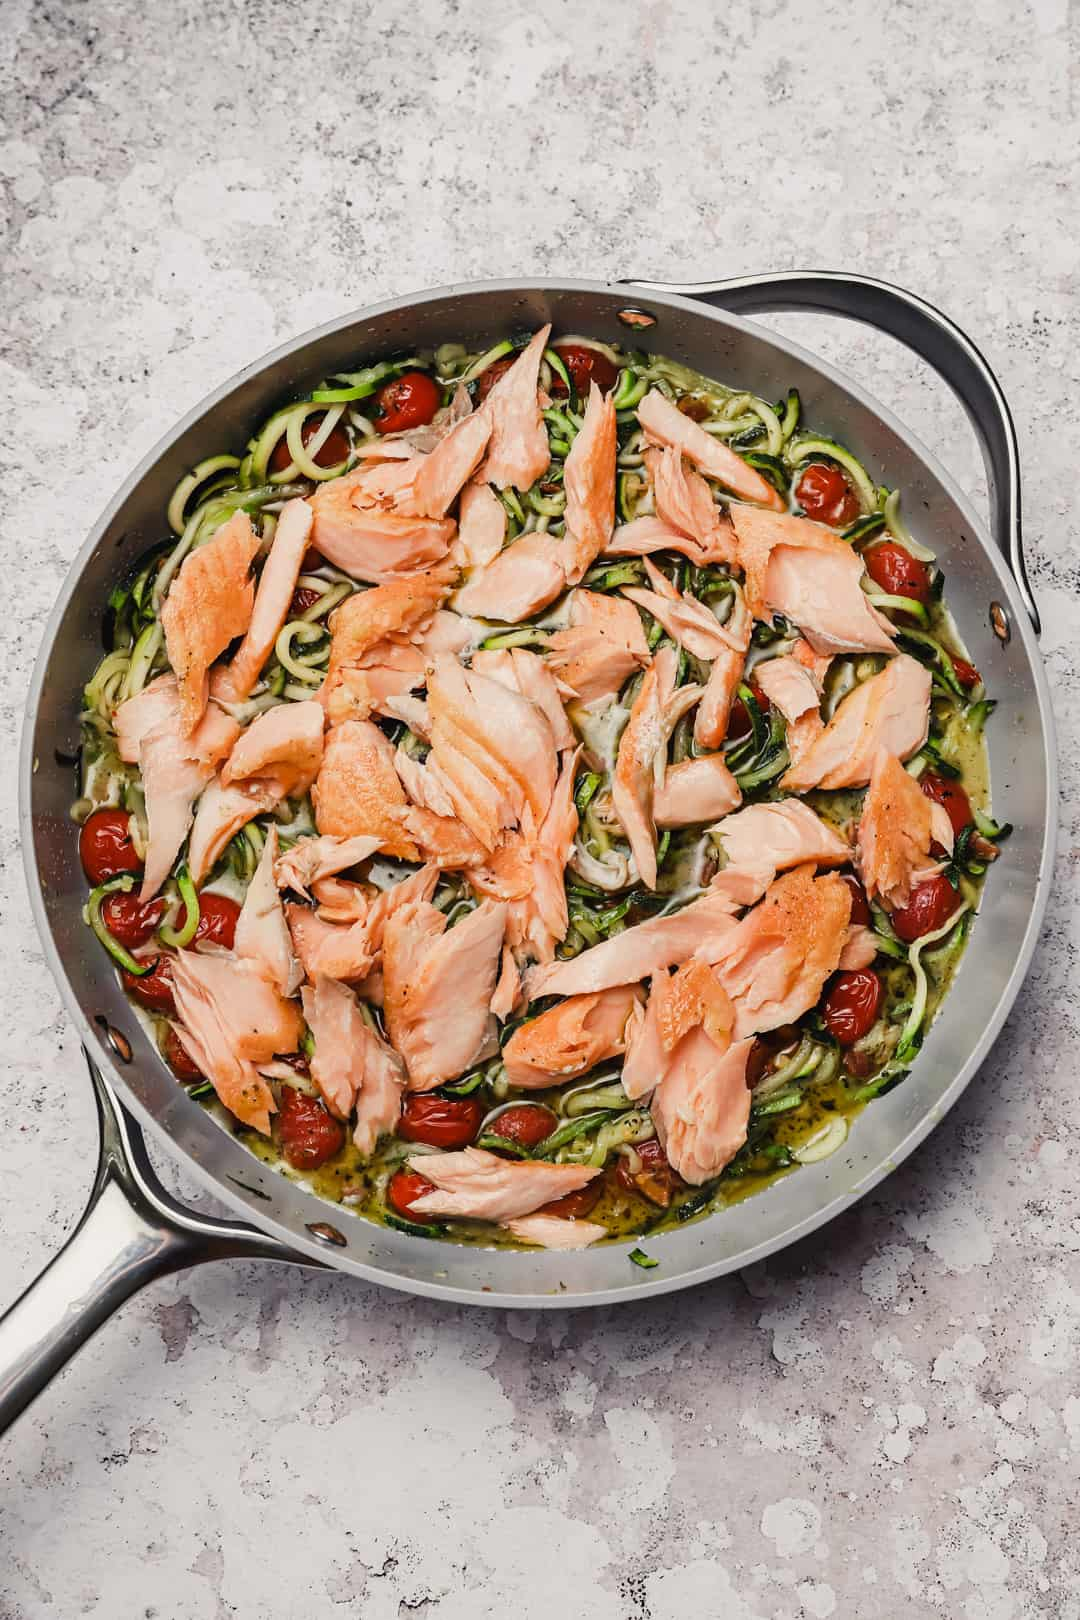 Pesto zoodles with salmon and blistered tomatoes